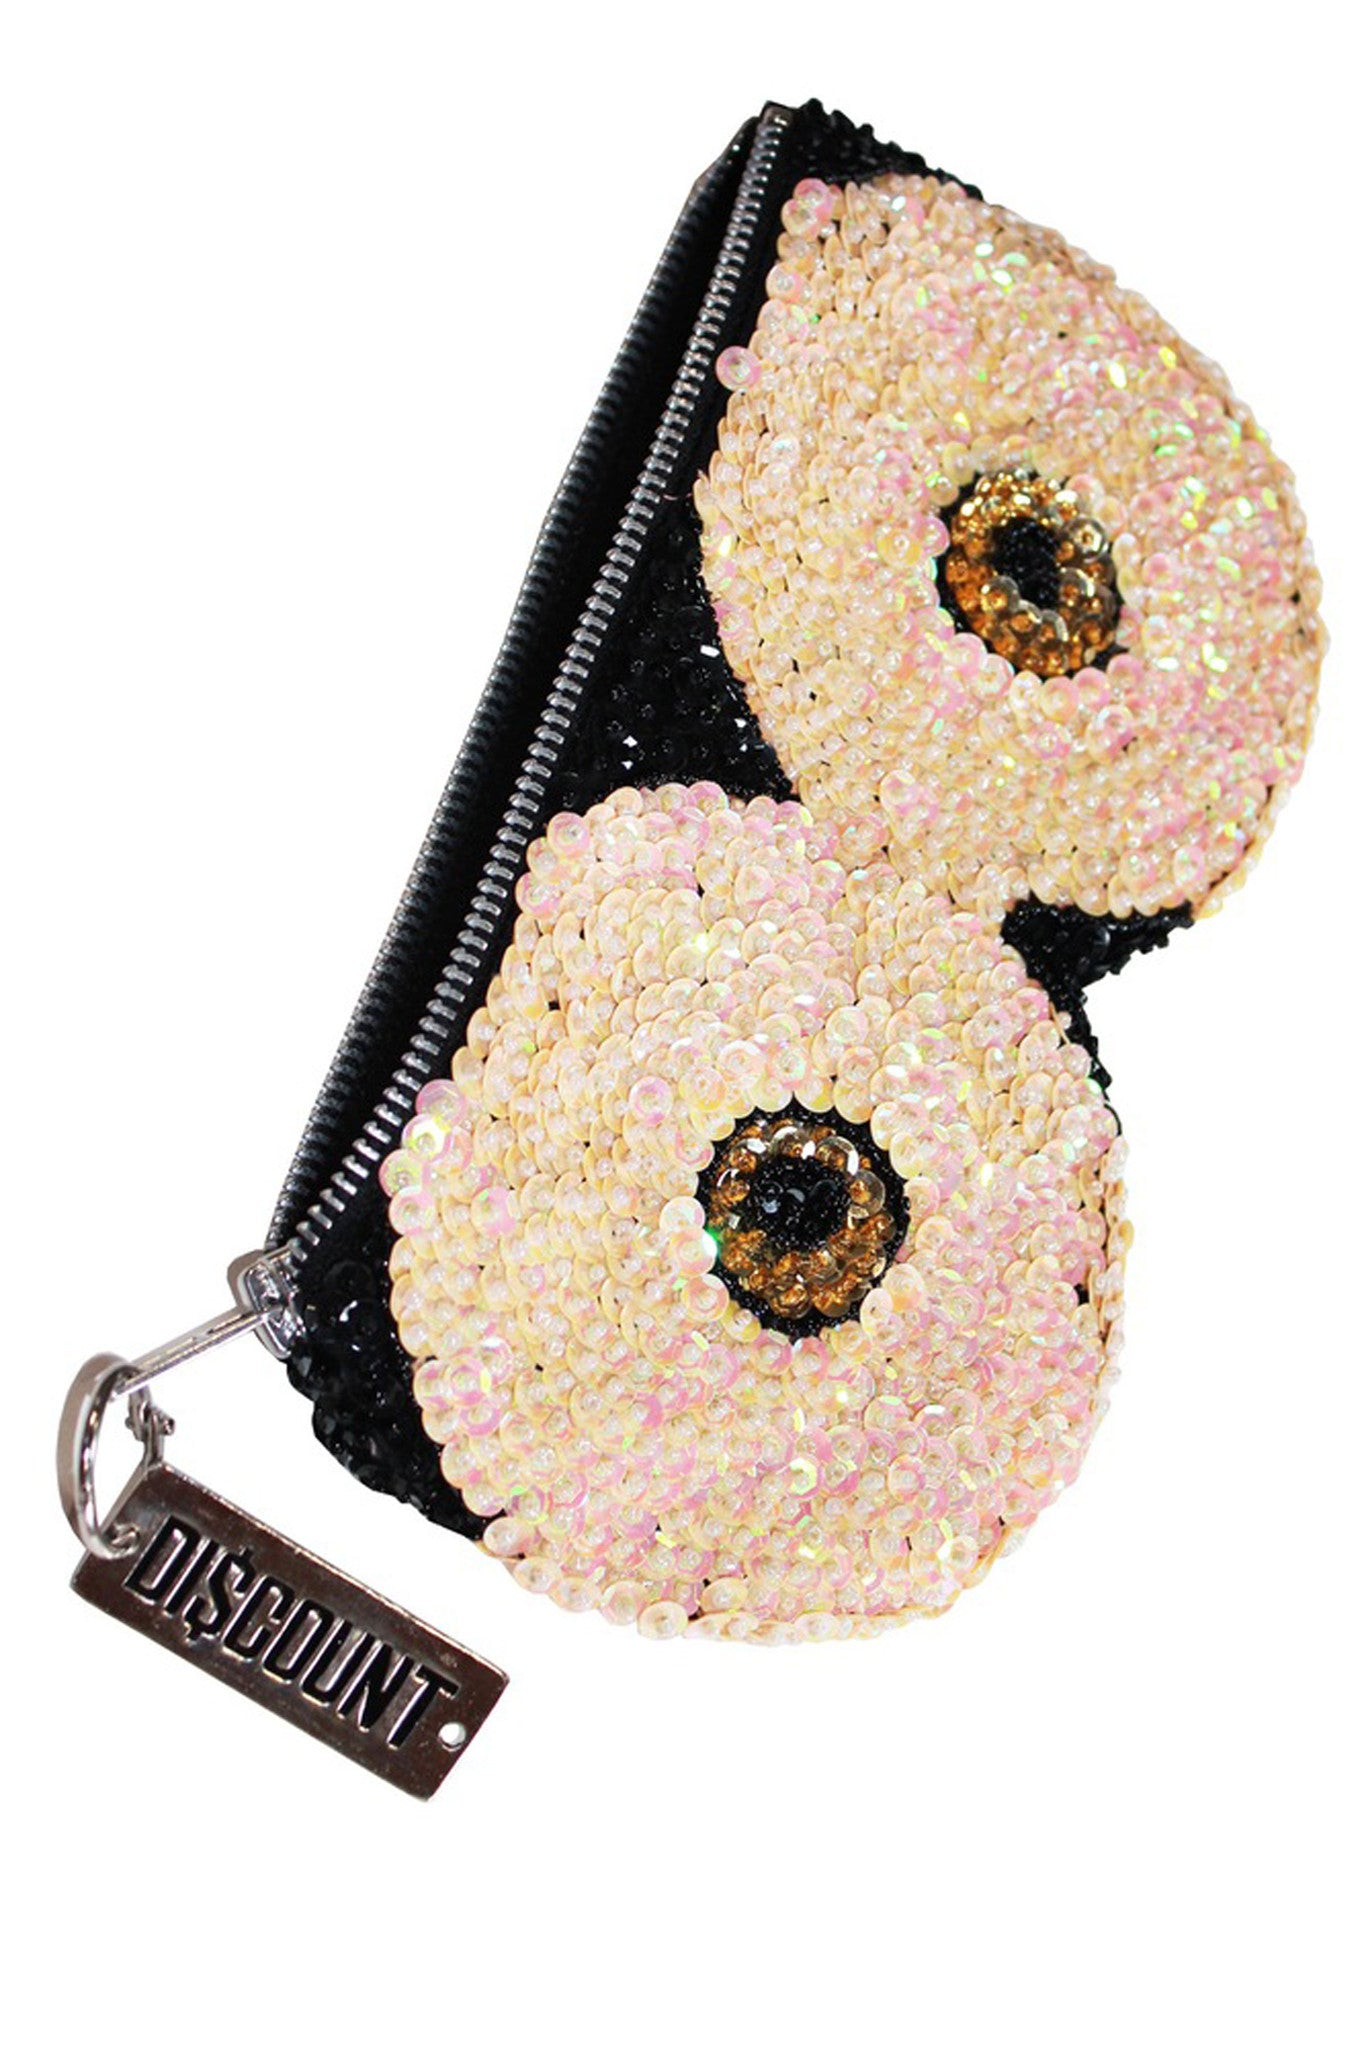 'BOOB' Hand-sequinned Clutch Wallet